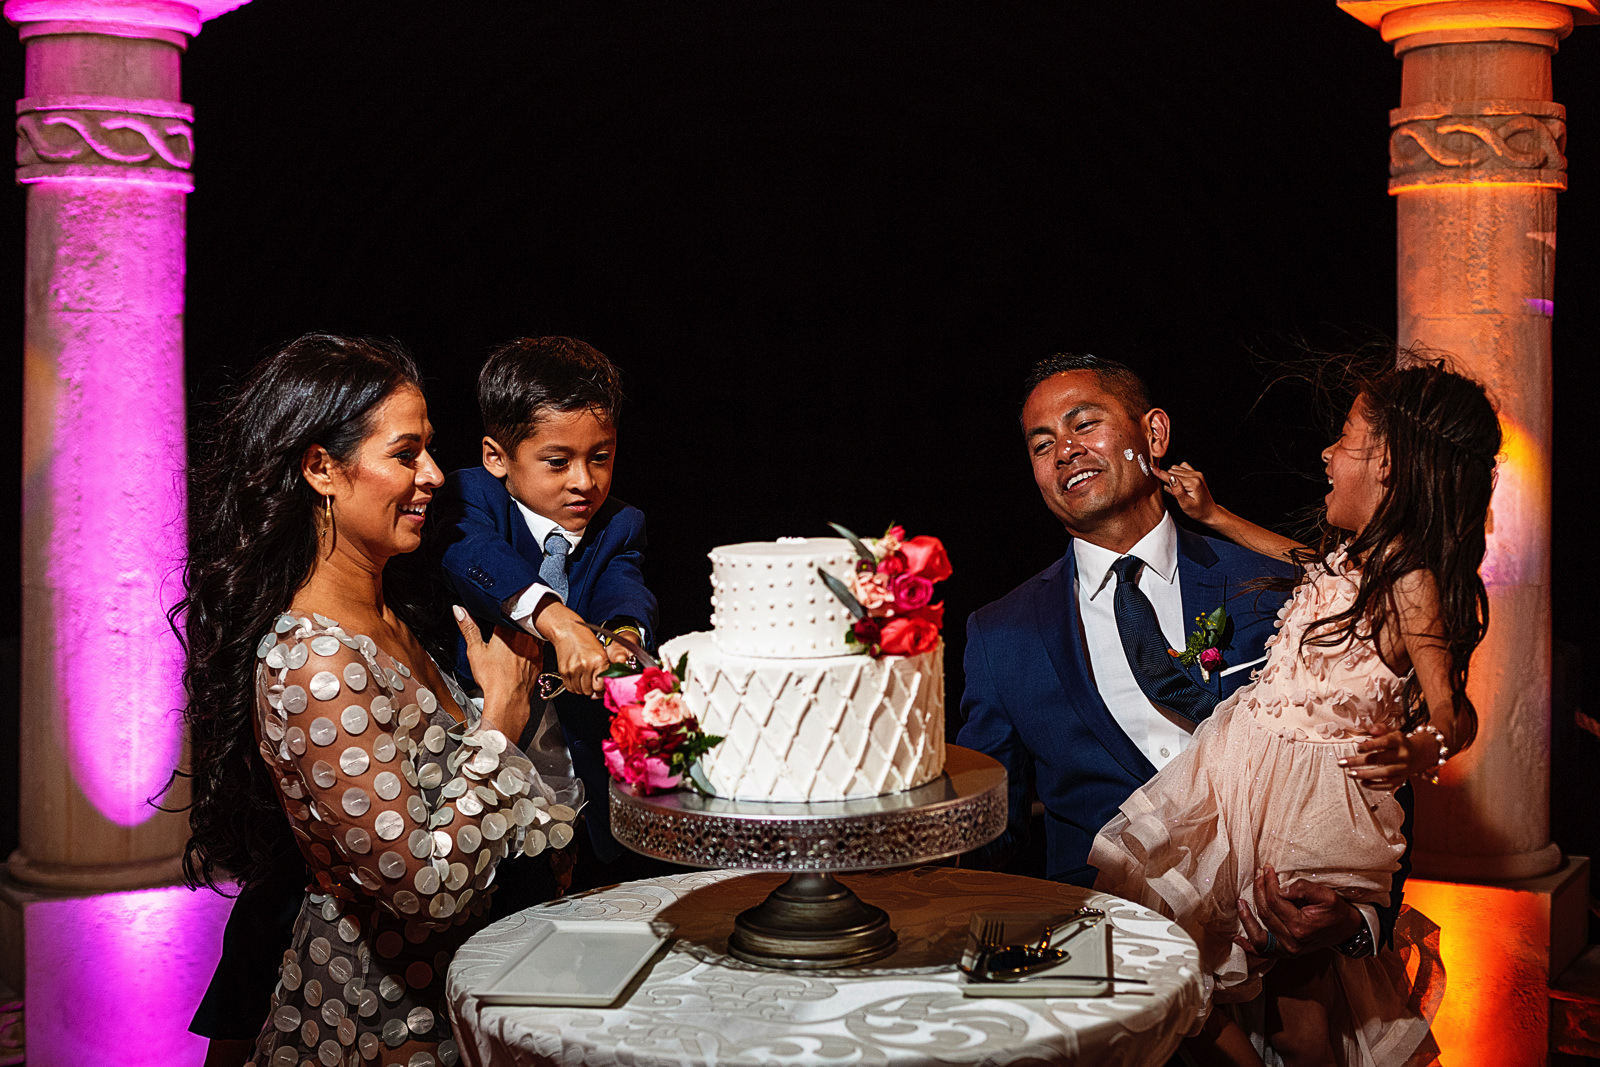 Groom, bride and kids having fun at the cake cutting part of their wedding